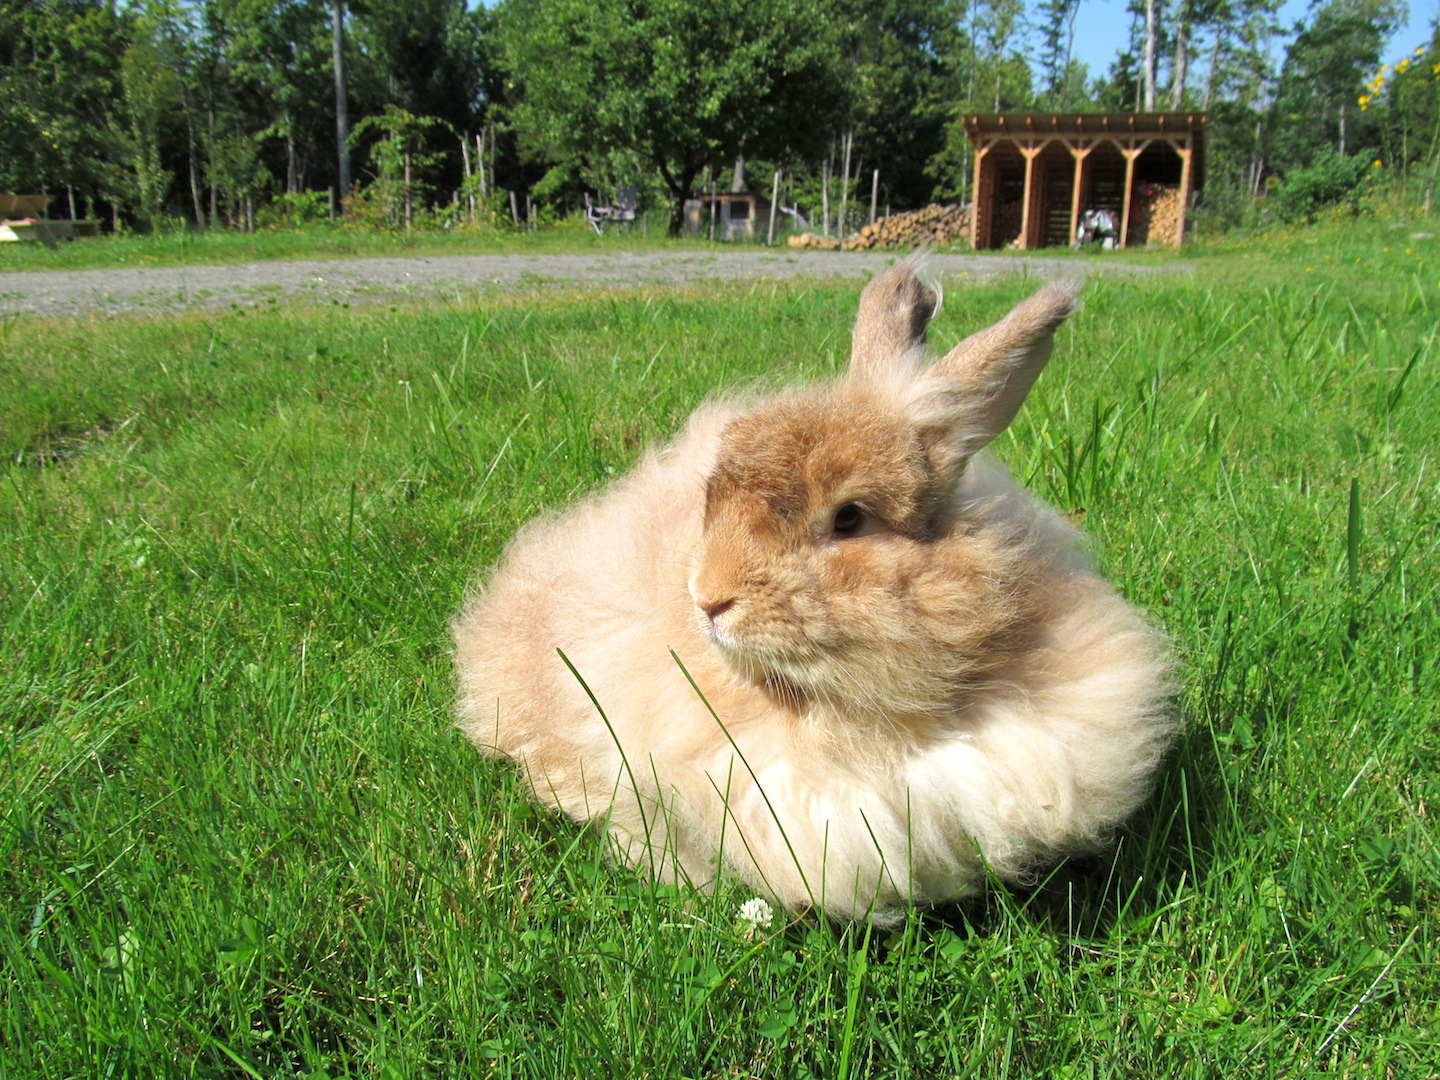 Raising Angora Rabbits for Fiber